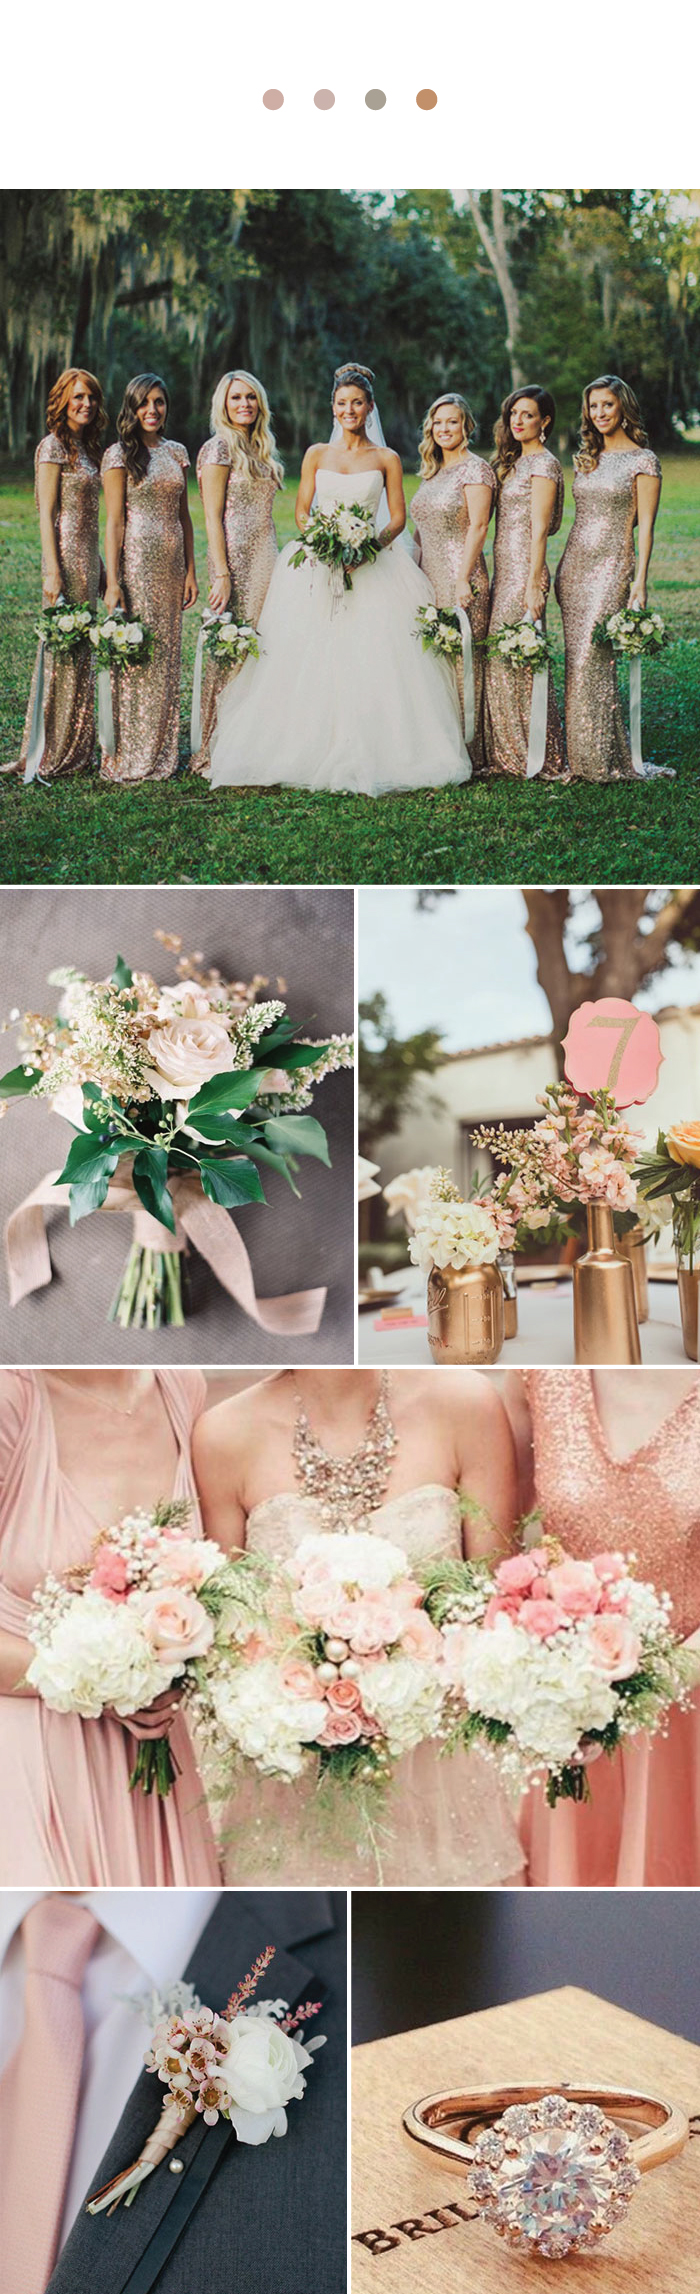 Weddings Ideas for Rose Gold